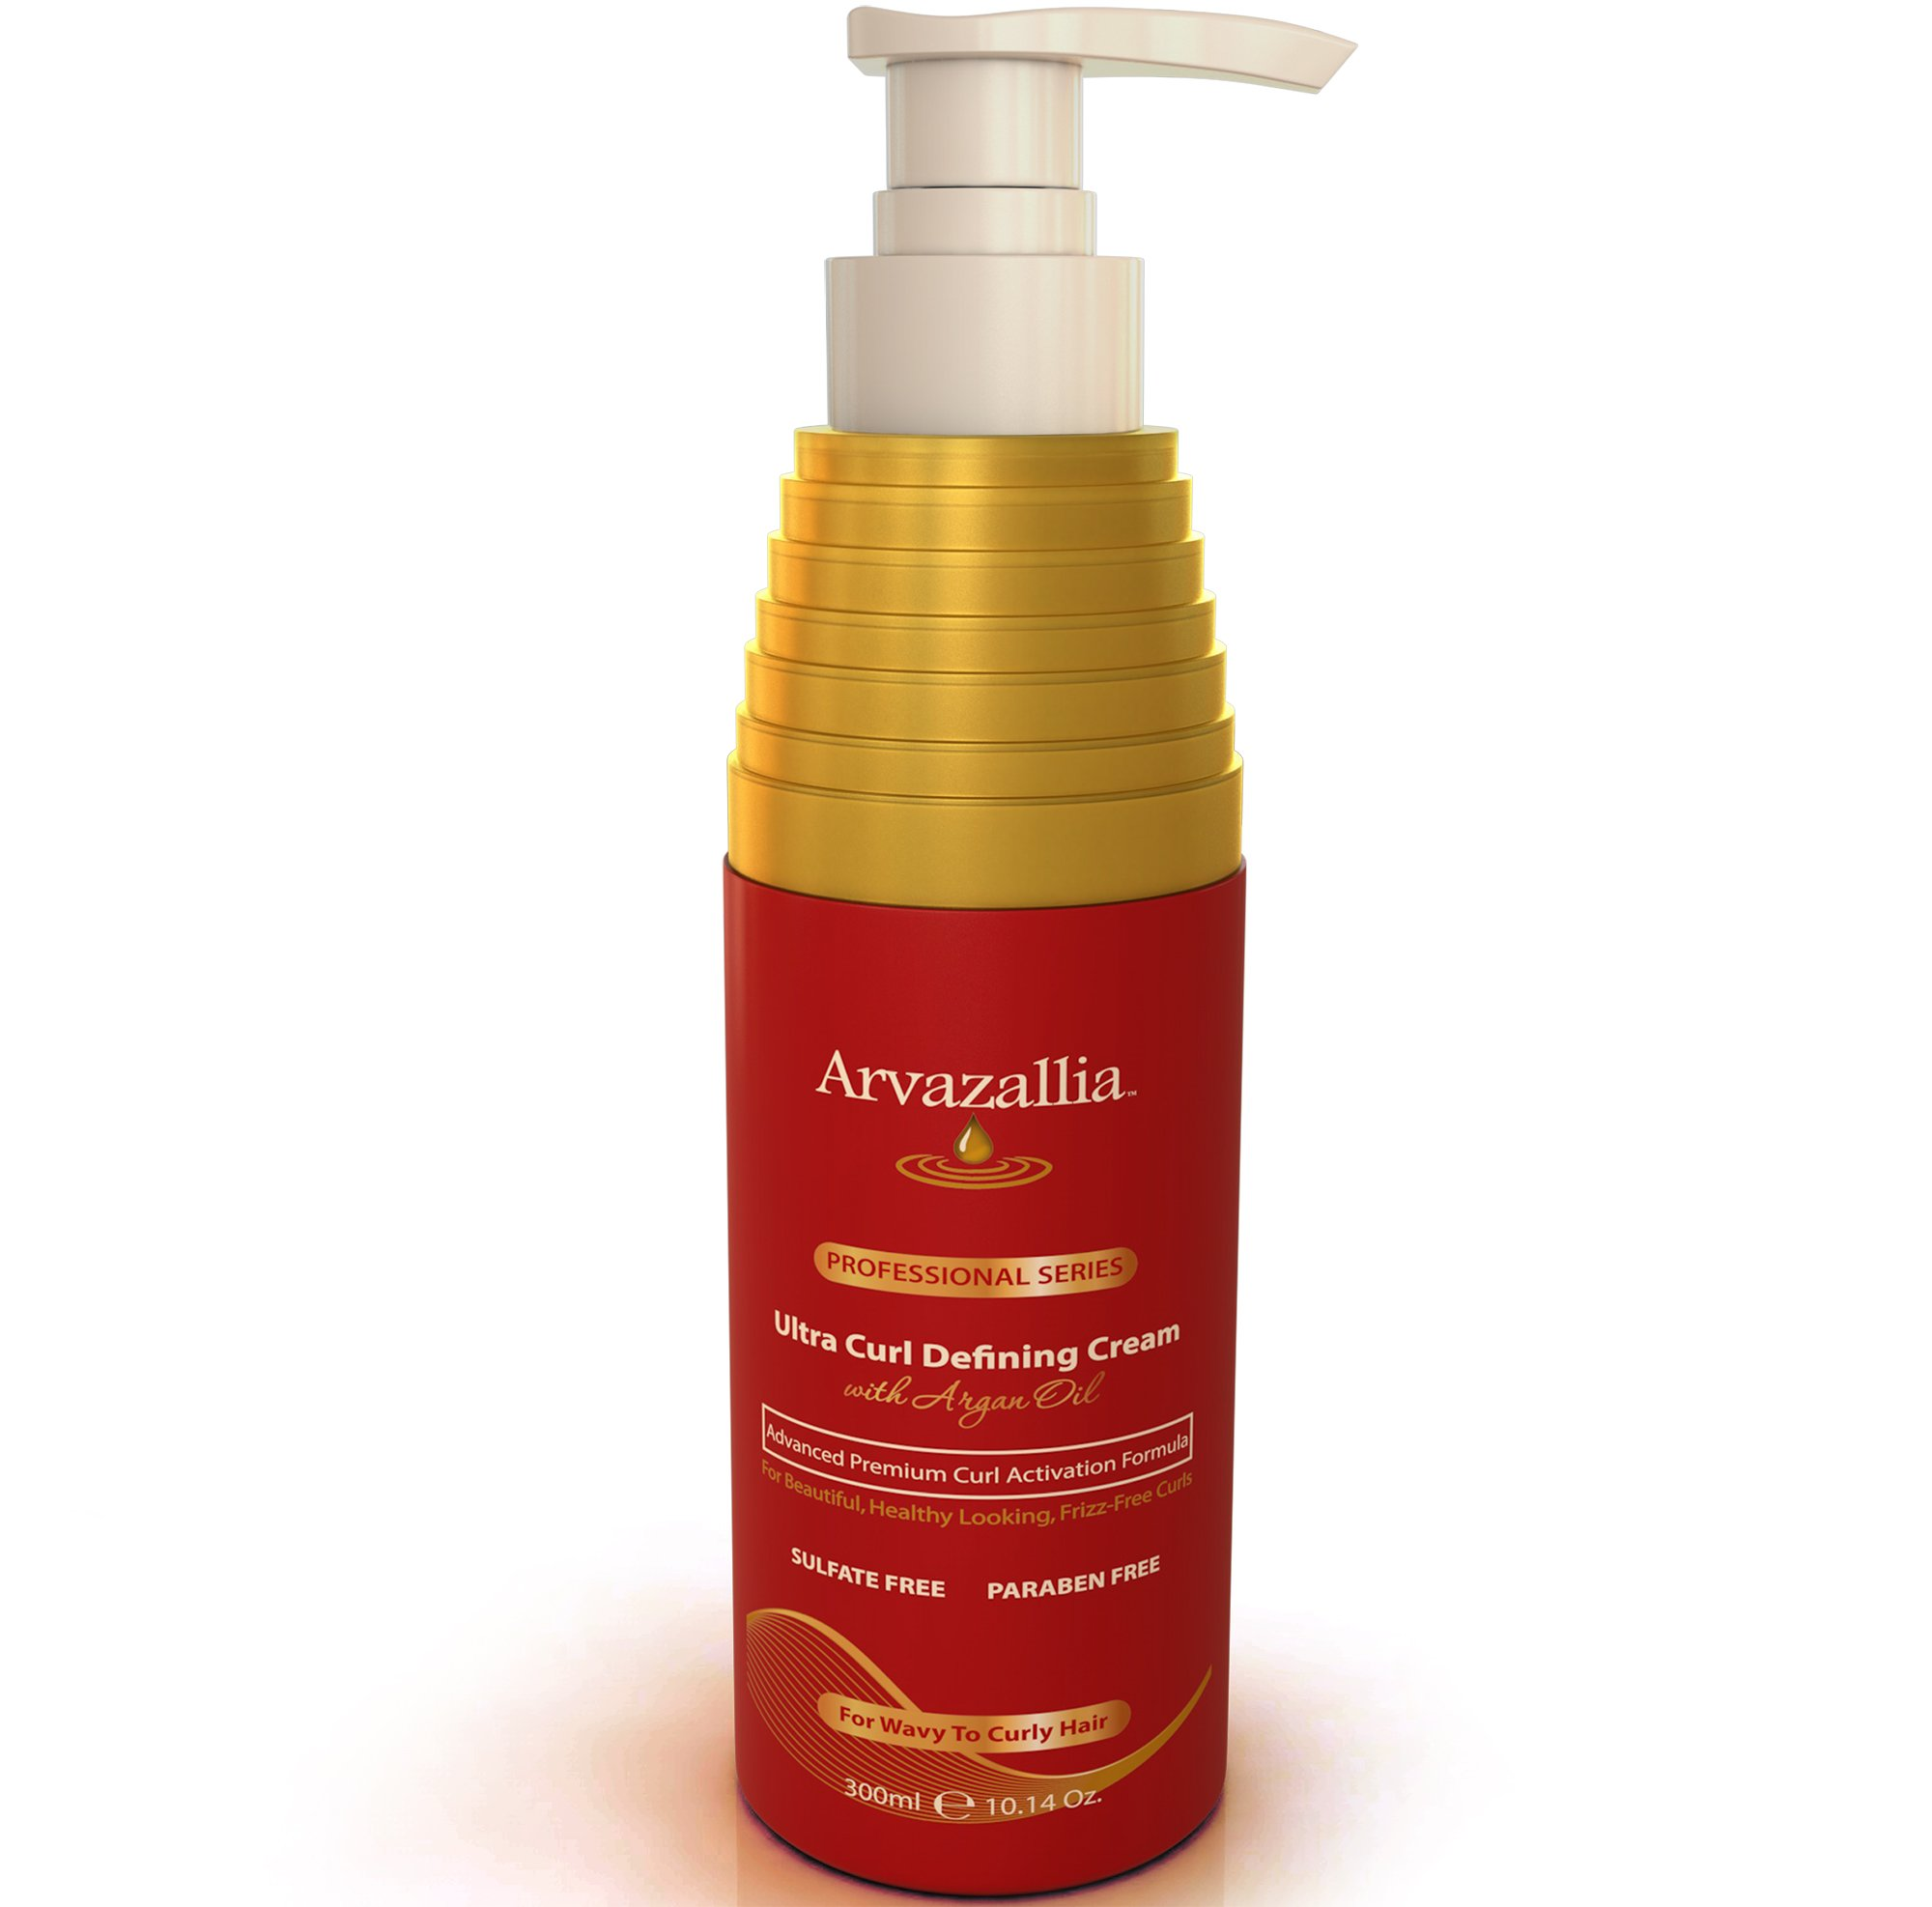 Ultra Curl Defining Cream with Argan Oil By Arvazallia for Wavy and Curly Hair